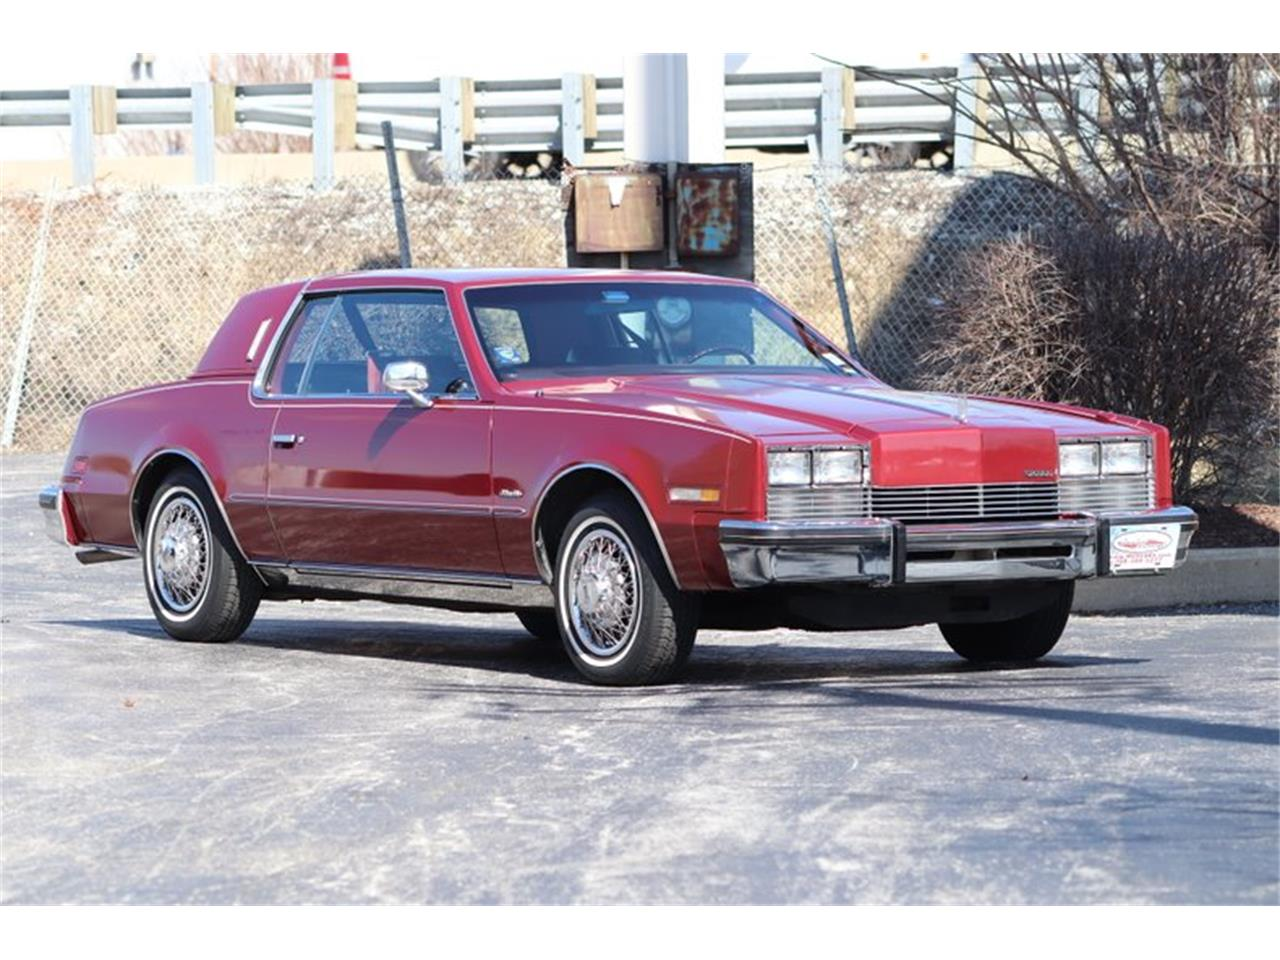 Large Picture of '82 Oldsmobile Toronado located in Alsip Illinois - $8,900.00 - PPX3